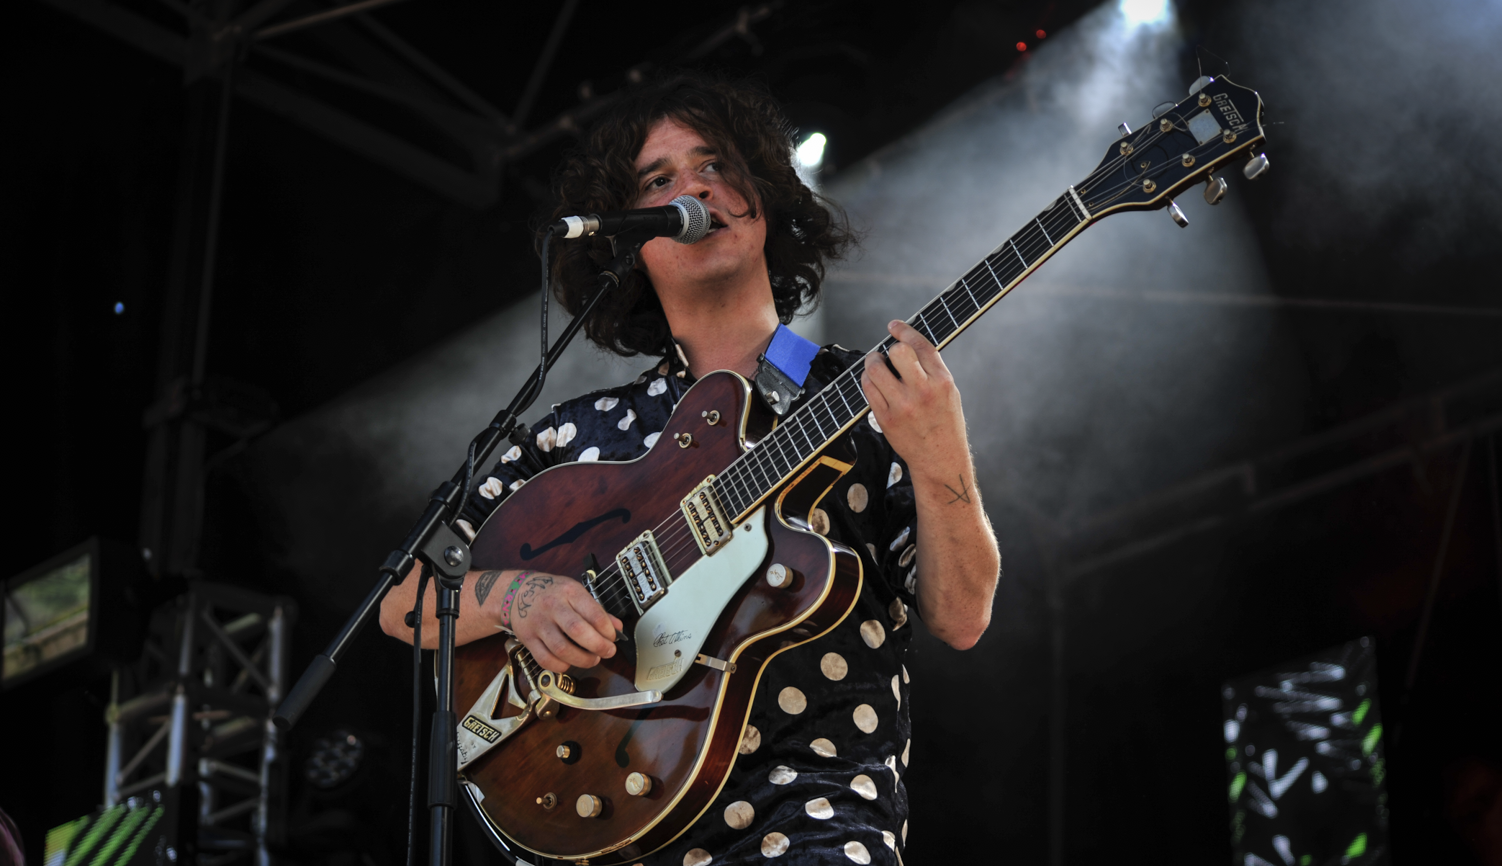 INTERVIEW: KYLE FALCONER AT TRNSMT